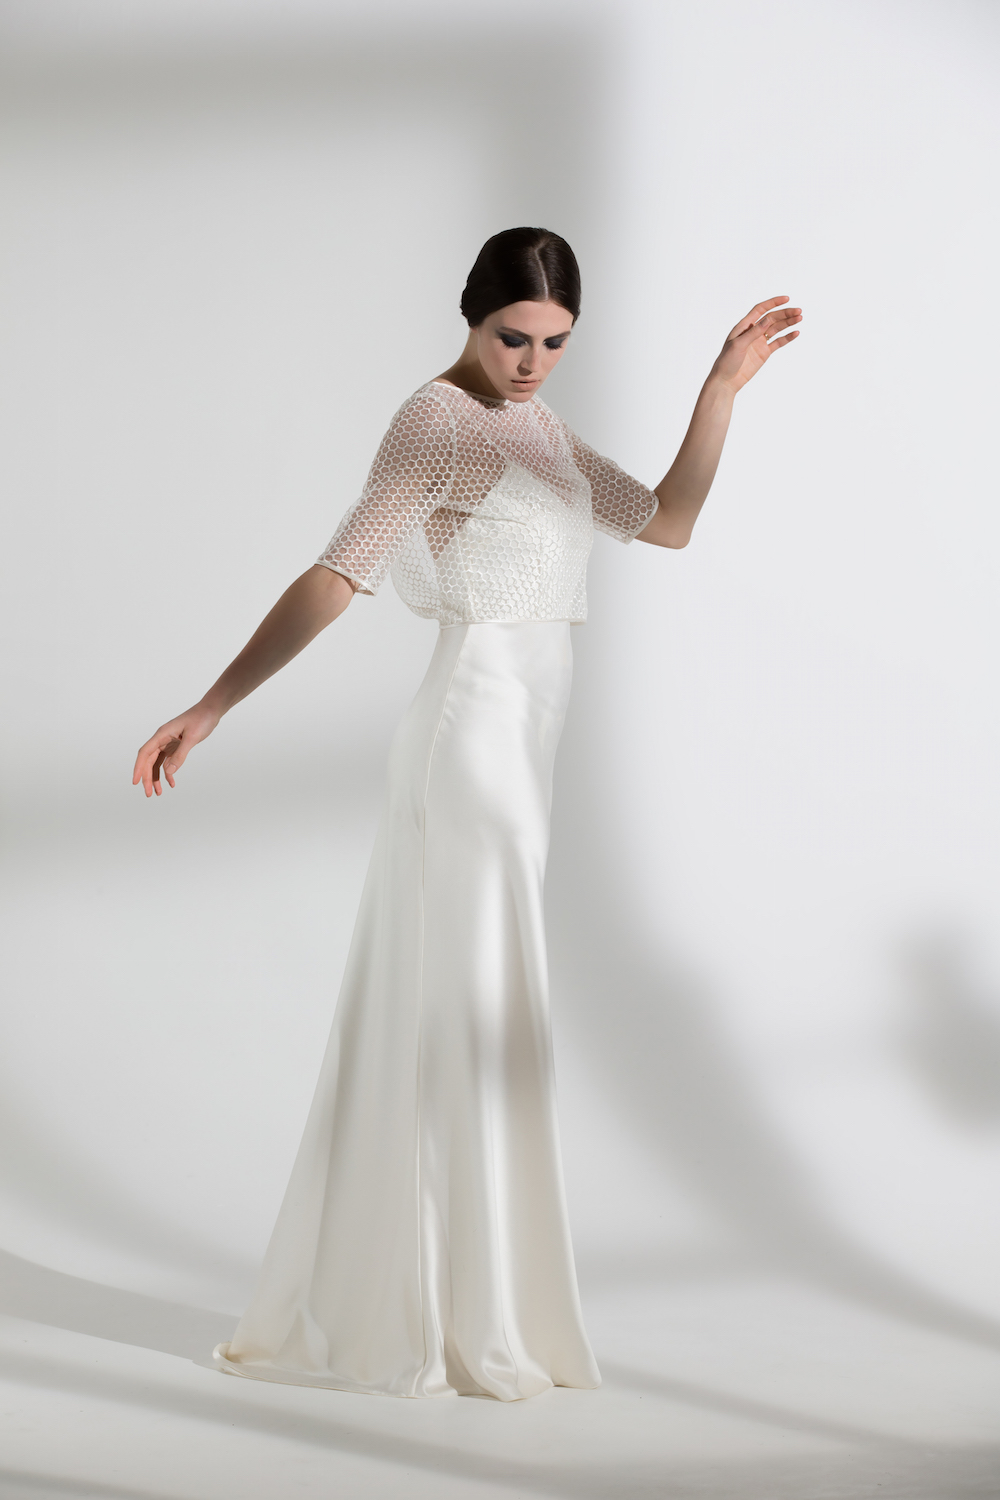 Honeysuckle top and Iris slip | Wedding dress and bridal separates by Halfpenny London